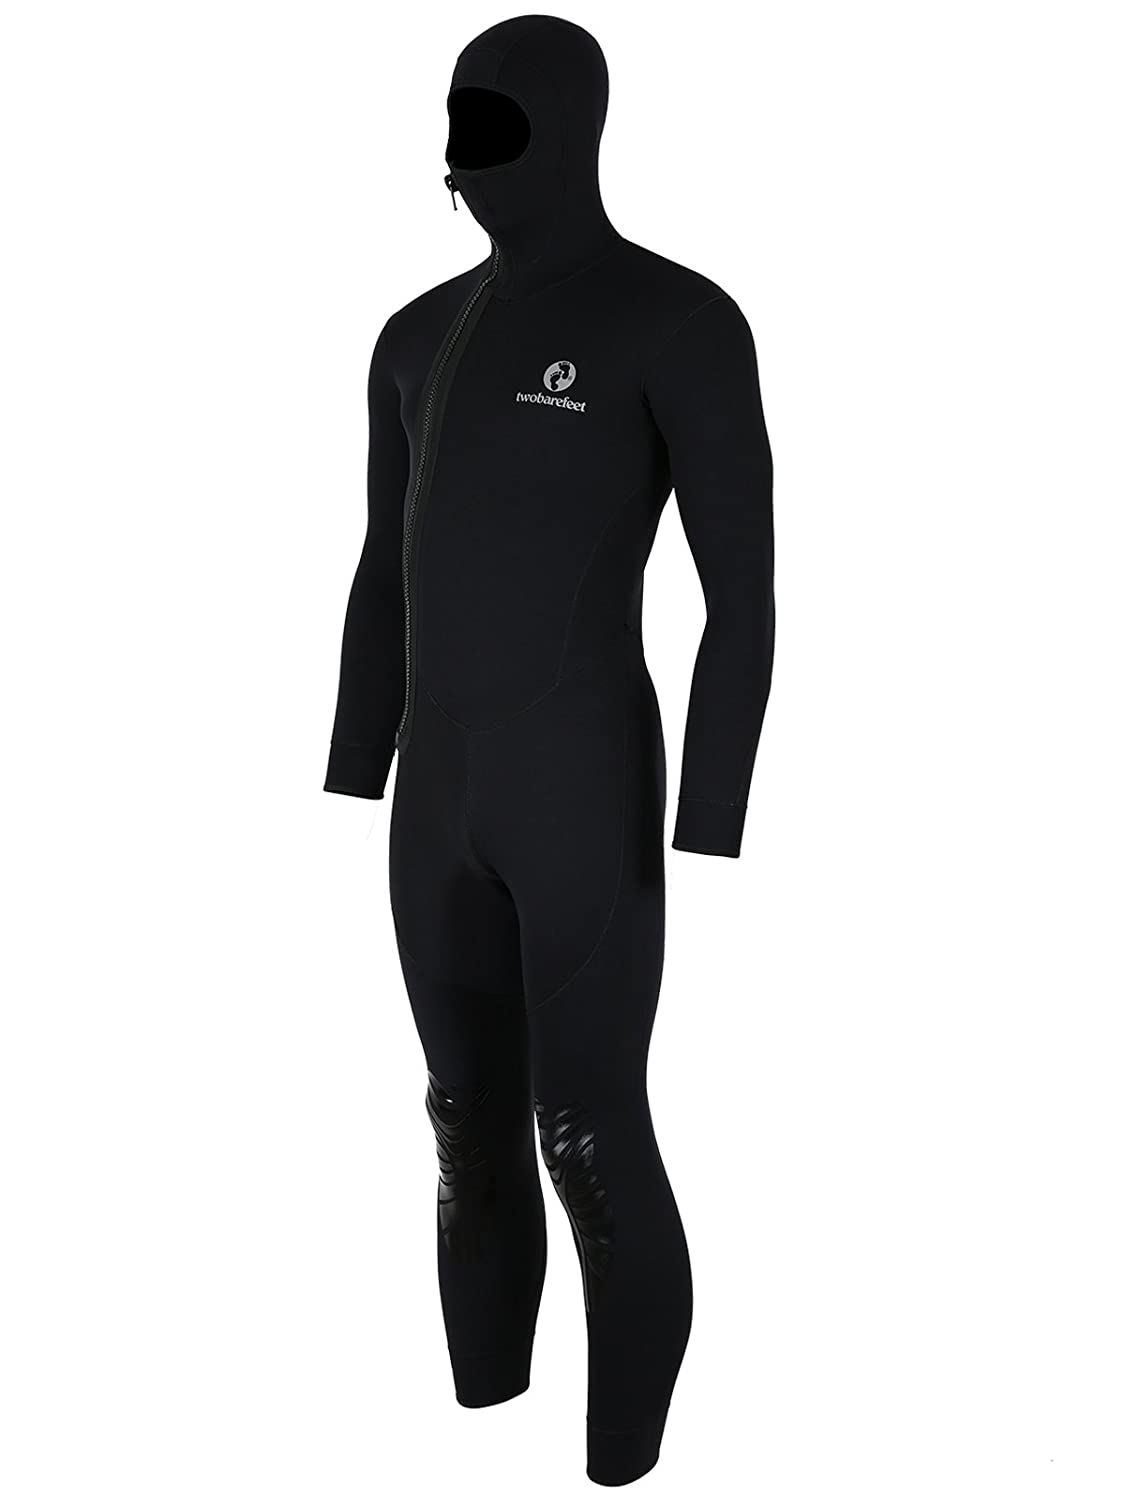 Two Bare Feet Arroyo Hooded 3mm Full Length Mens//Womens//Unisex Wetsuit for Diving Snorkeling and Watersports